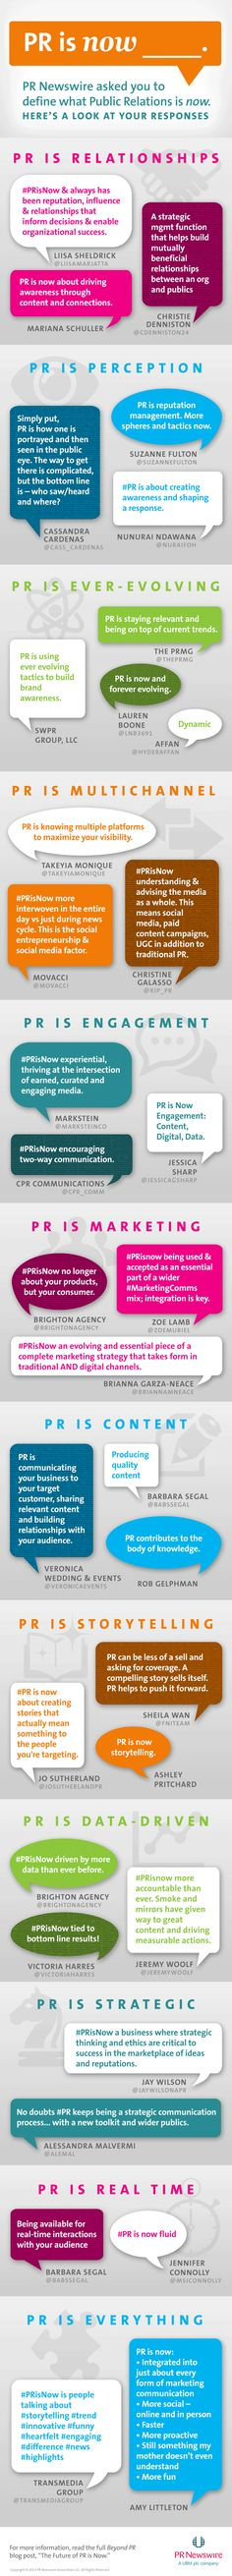 "As technology continues to evolve, and the field of public relations along with it, this question keeps coming up: ""What is PR?"" How do you define public relations?"